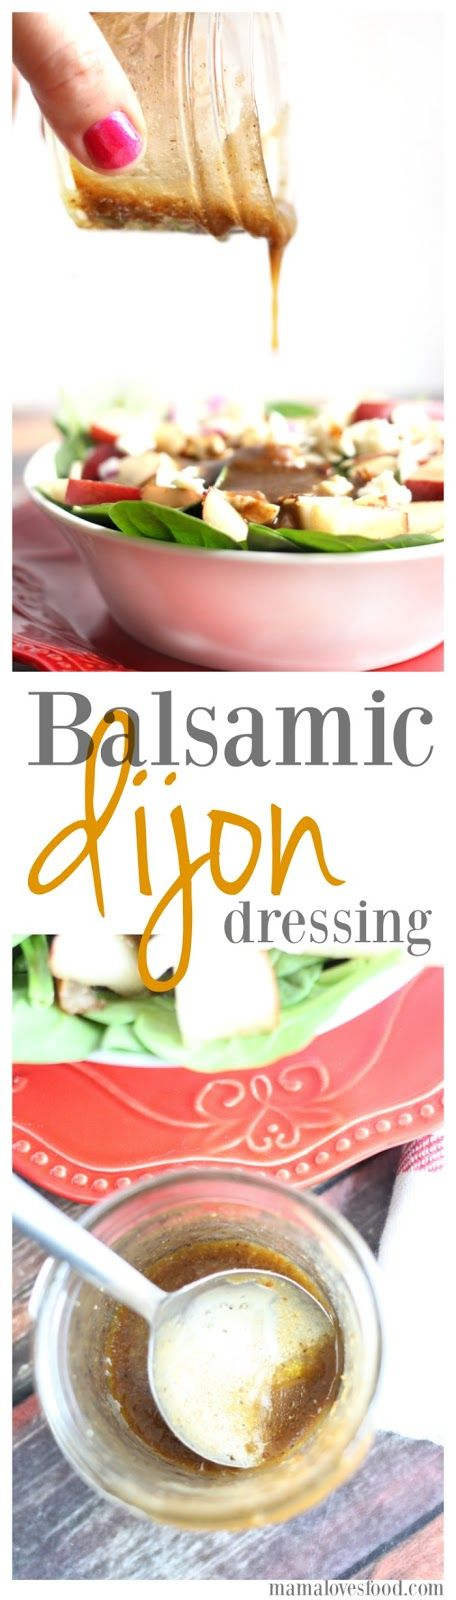 Balsamic Dijon Salad Dressing - only SIX ingredients INCLUDING salt & pepper.  So easy to make and super delicious.  I bet you already have all the ingredients you need :-D